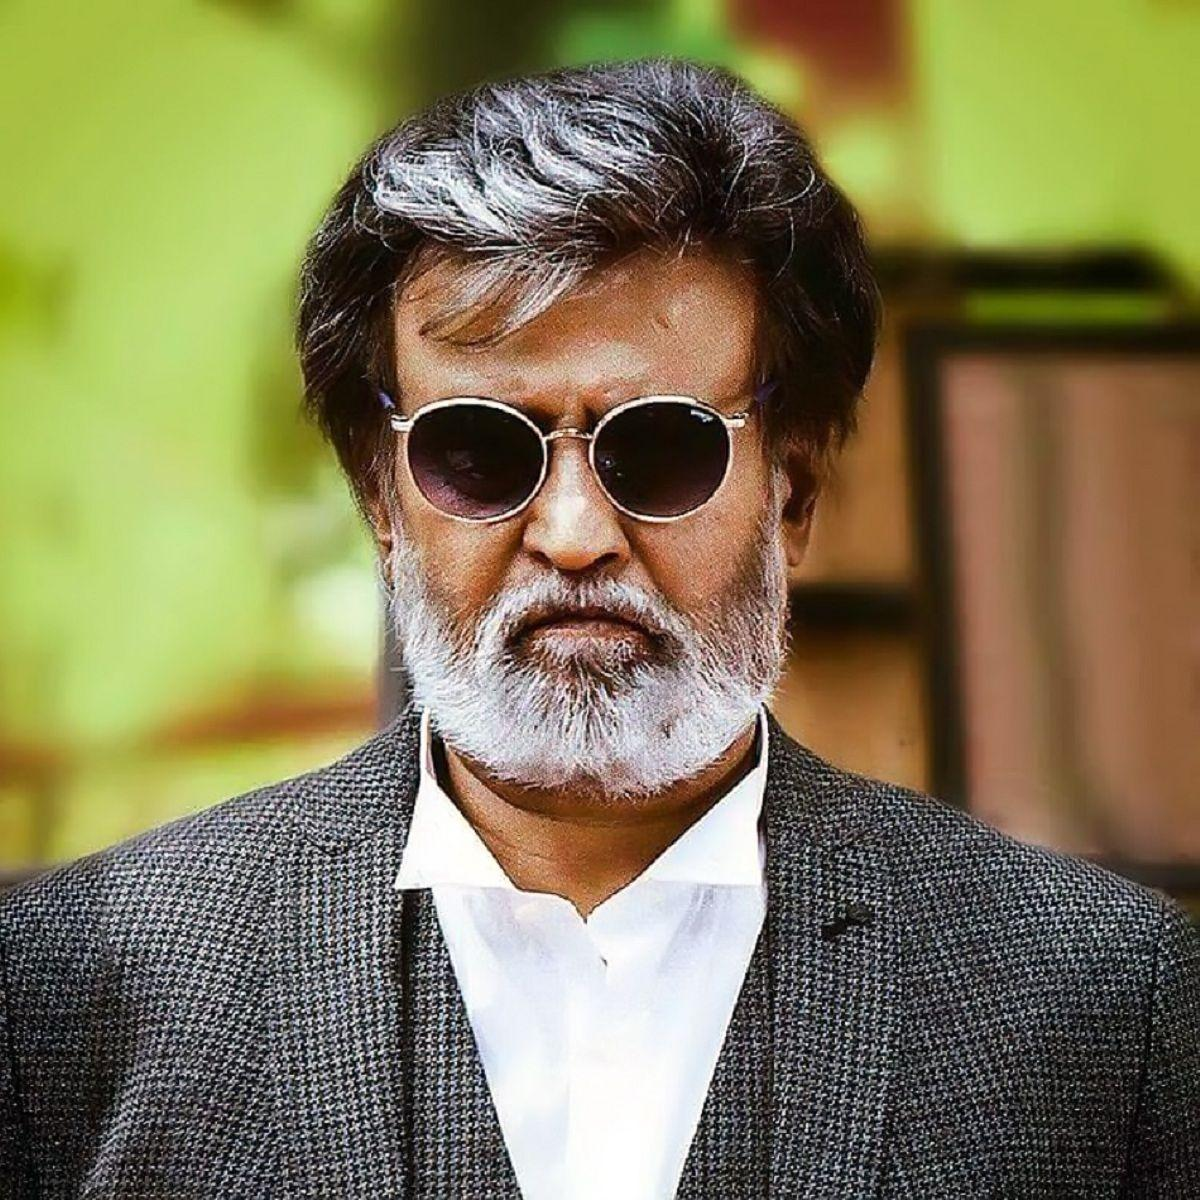 Rajini Kanth Kabali Posters HD | Wallpapers - Alertstou.com